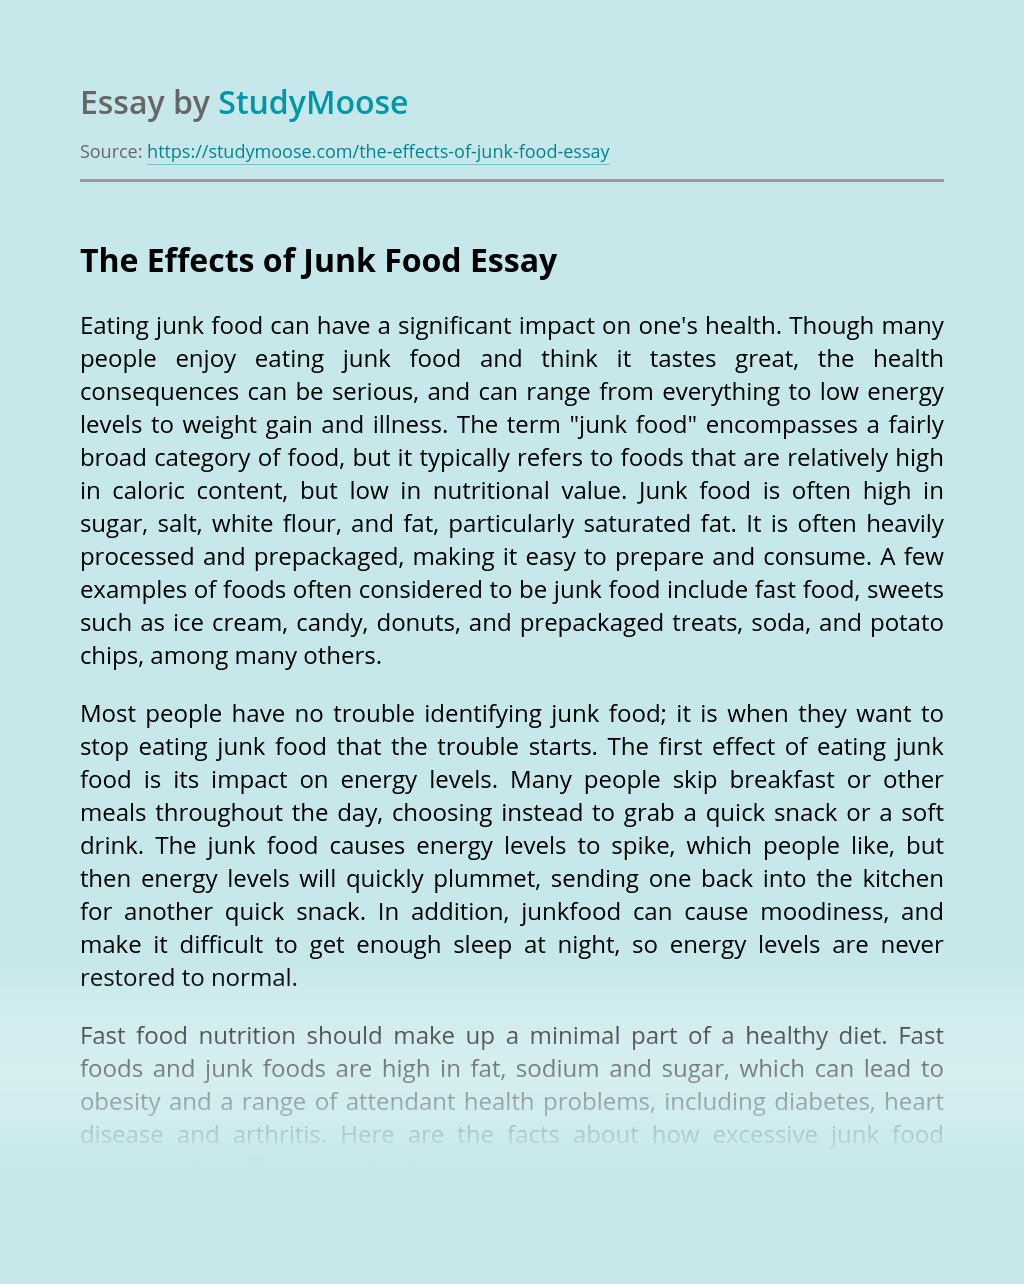 The Effects of Junk Food